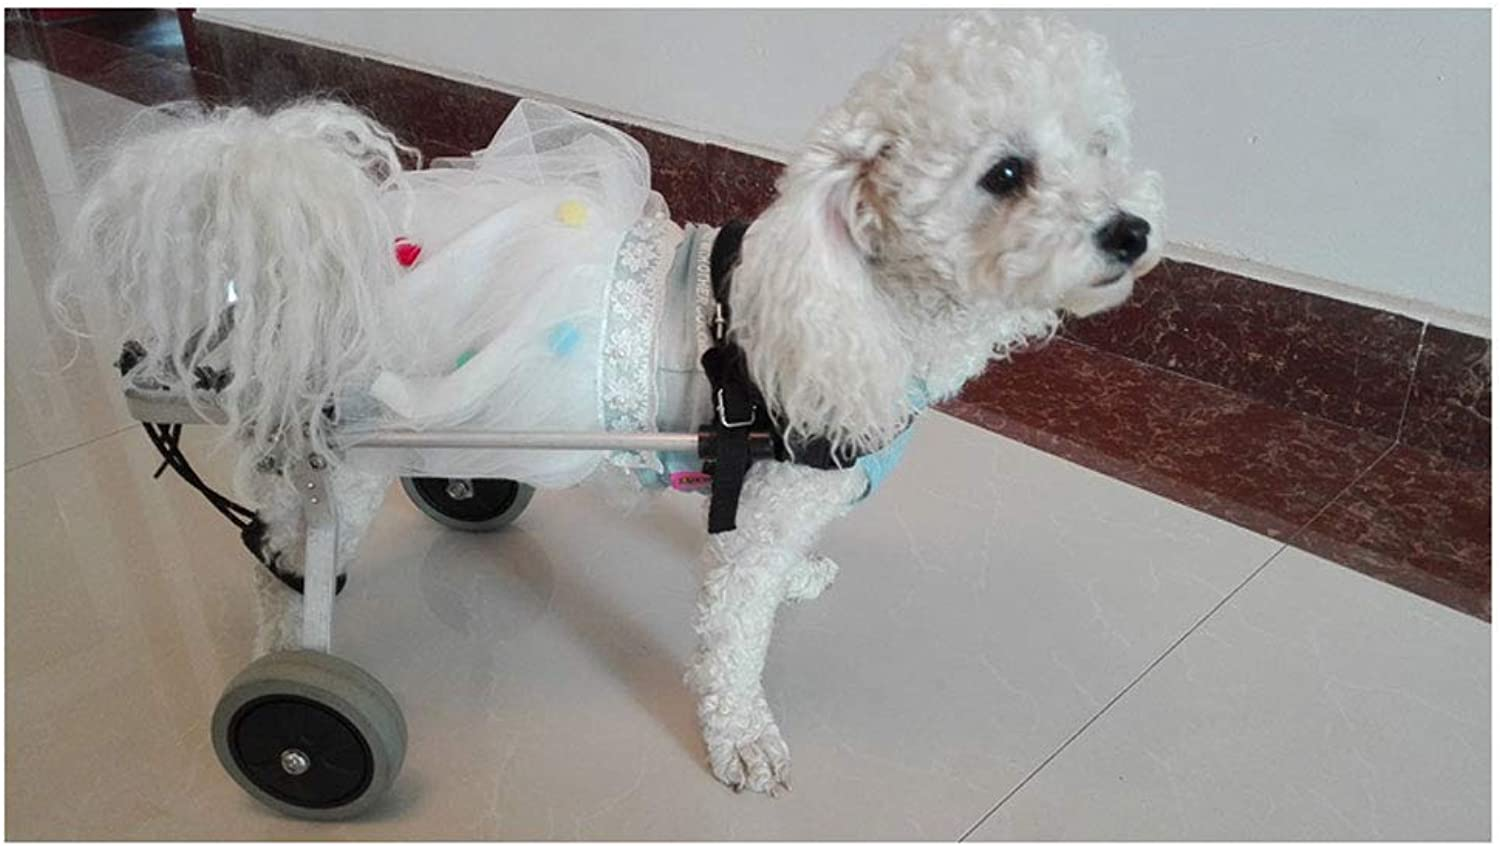 LLGCWLY Dog wheelchair, dog training car, pet scooter adjustable dog pet wheelchair hind leg repair, large small dogs can be used, can be adjusted in size, (Size   XS)